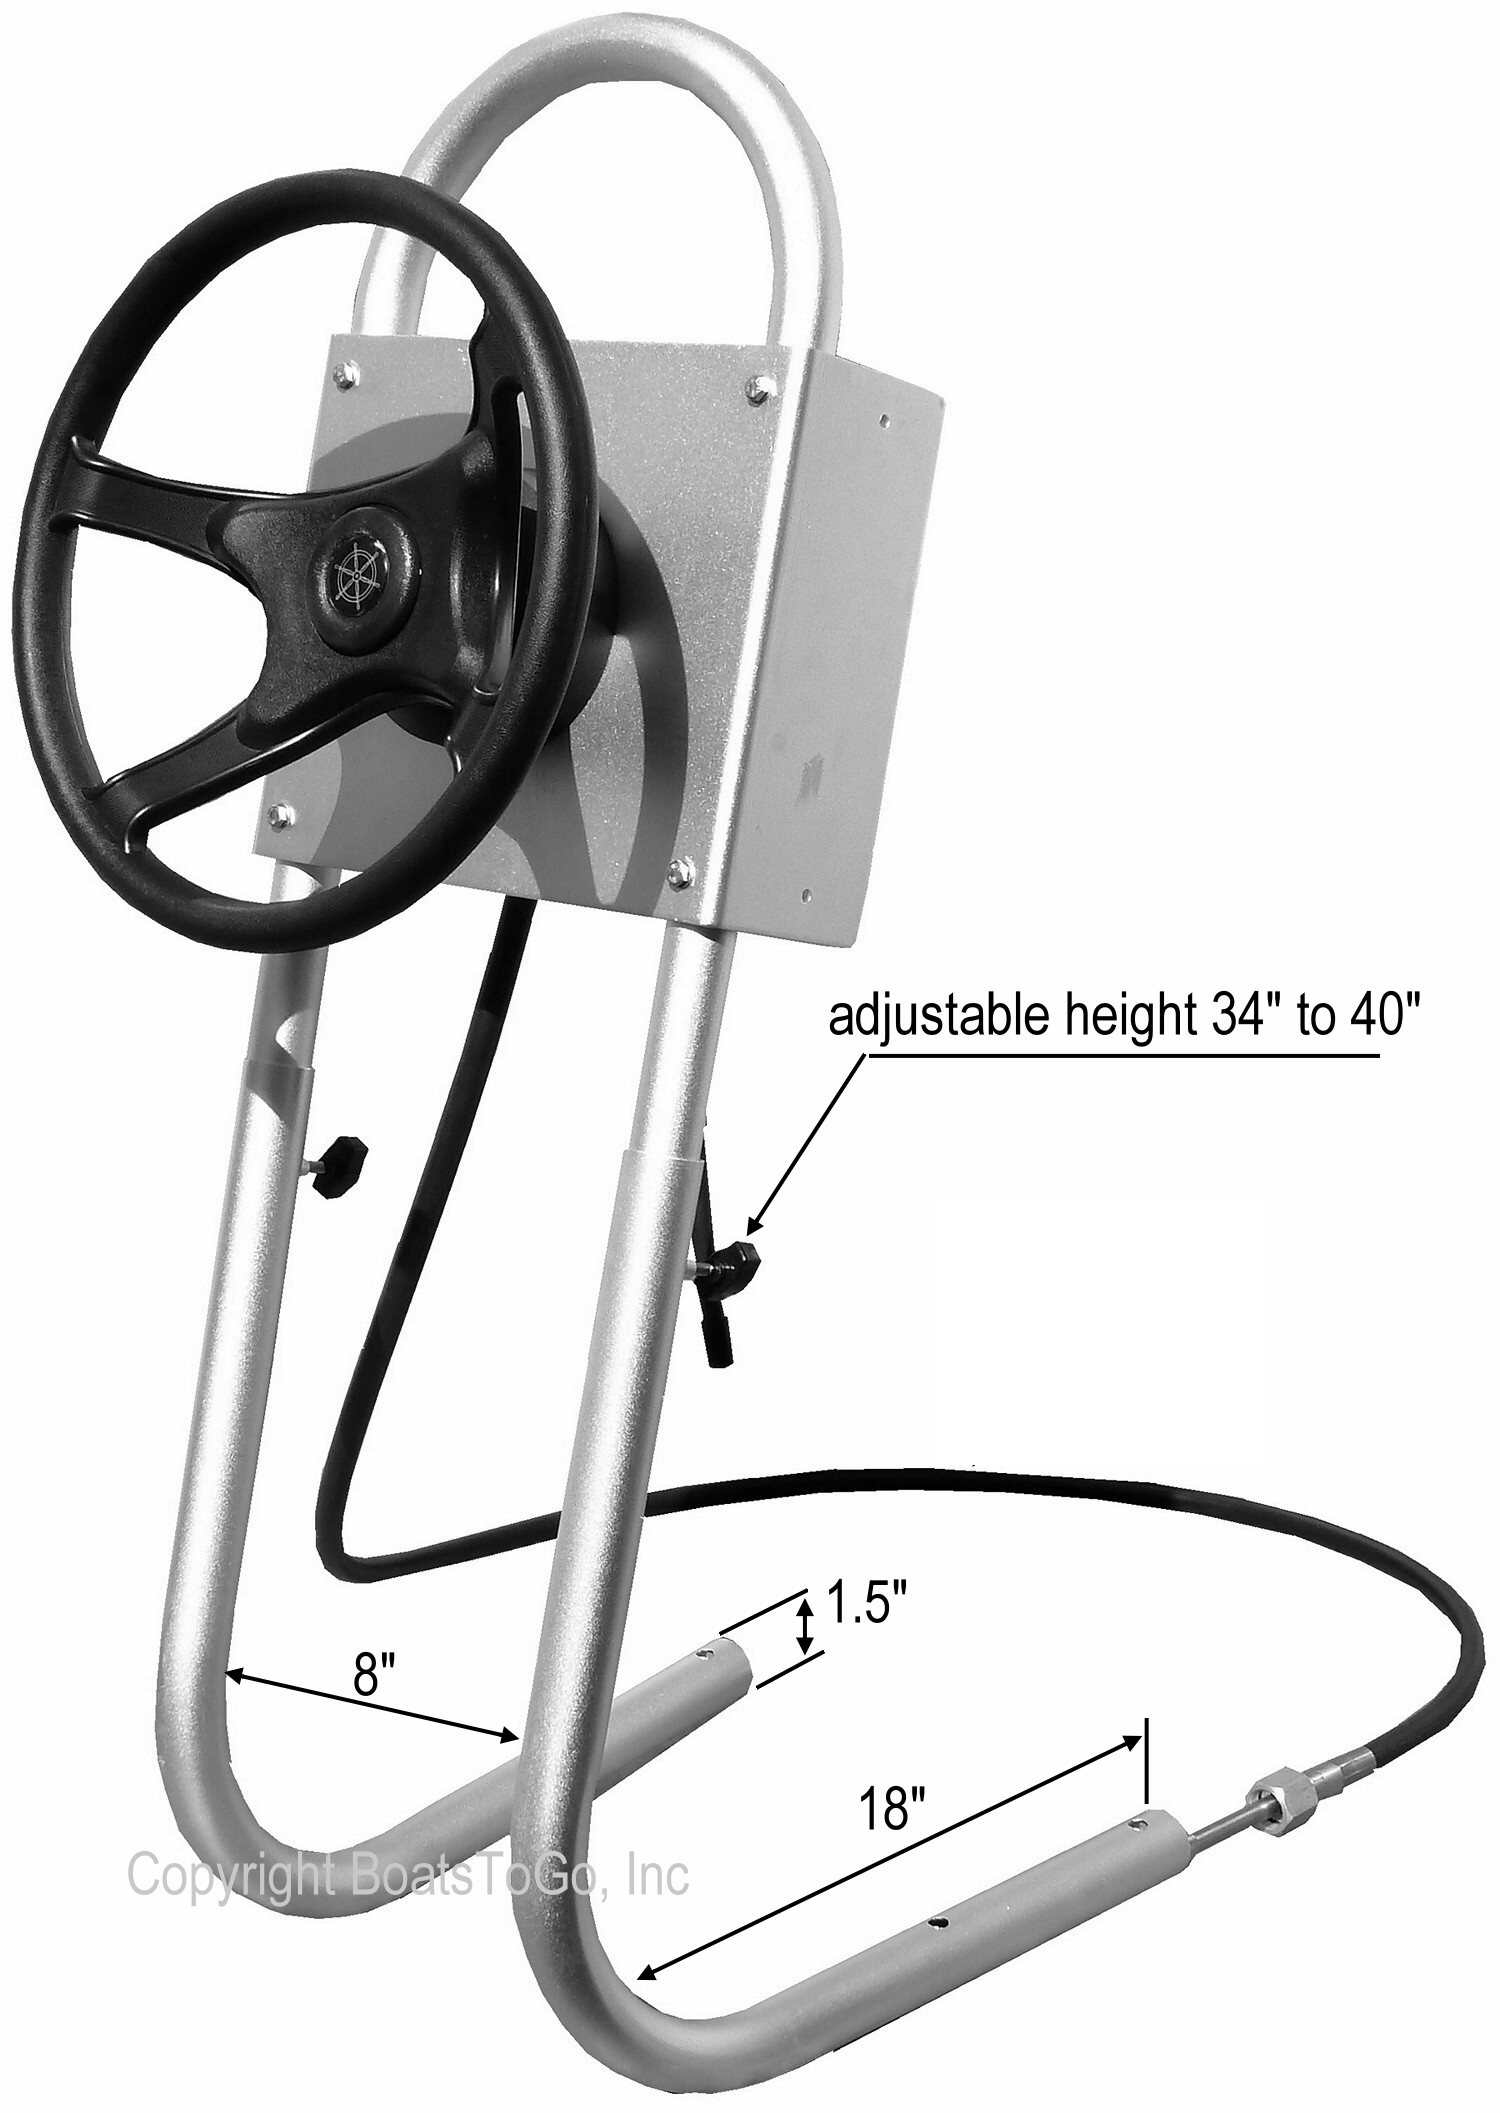 Central Console System For Inflatable Boats Ribs Jon Boats